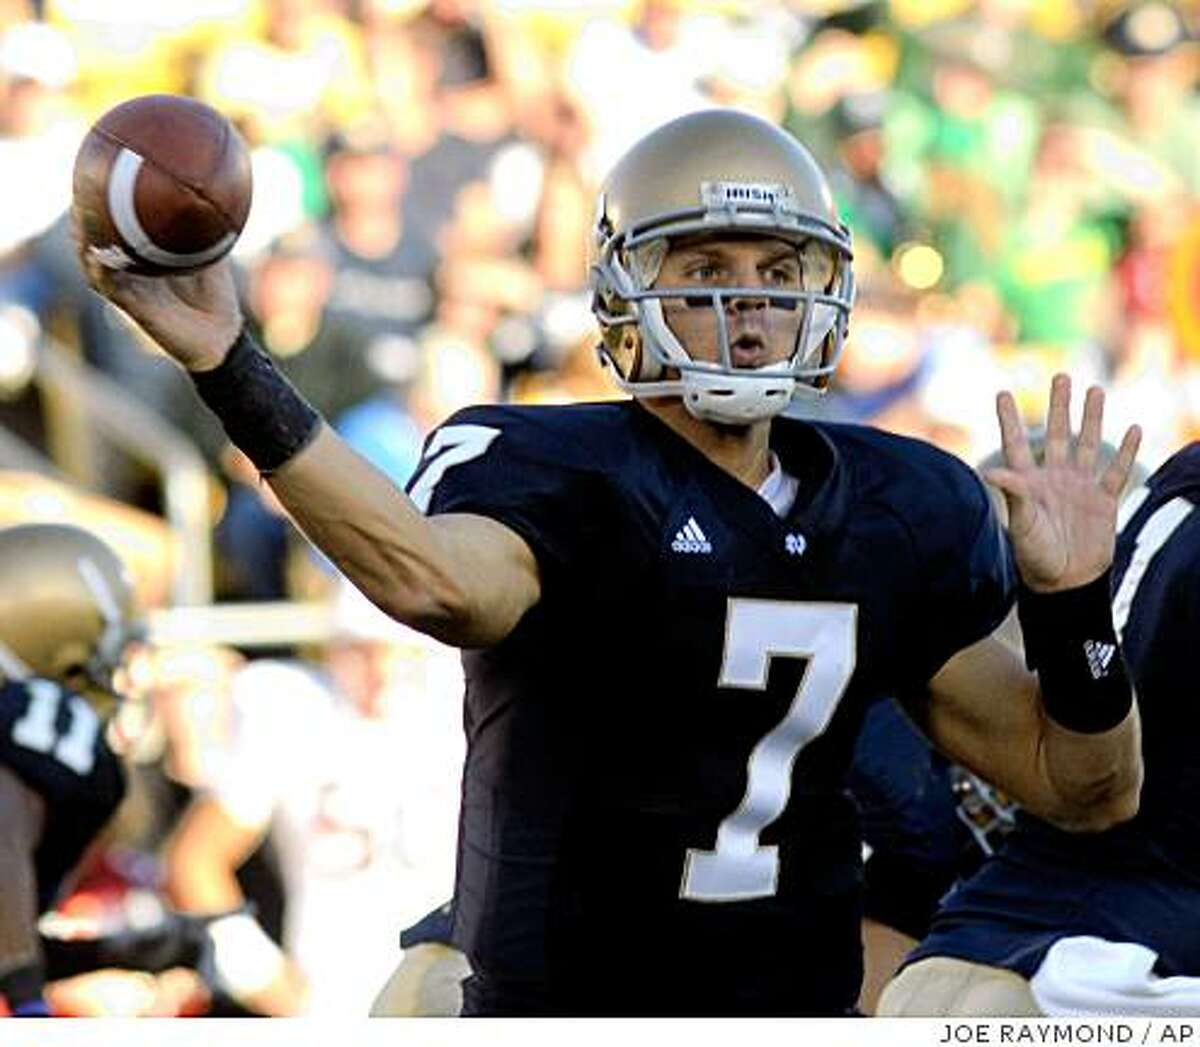 Notre Dame quarterback Jimmy Clausen throws a pass in fourth-quarter action in an NCAA college football game Saturday, Oct. 4, 2008, in South Bend, Ind. Notre Dame defeated Stanford 28-21. (AP Photo/Joe Raymond)